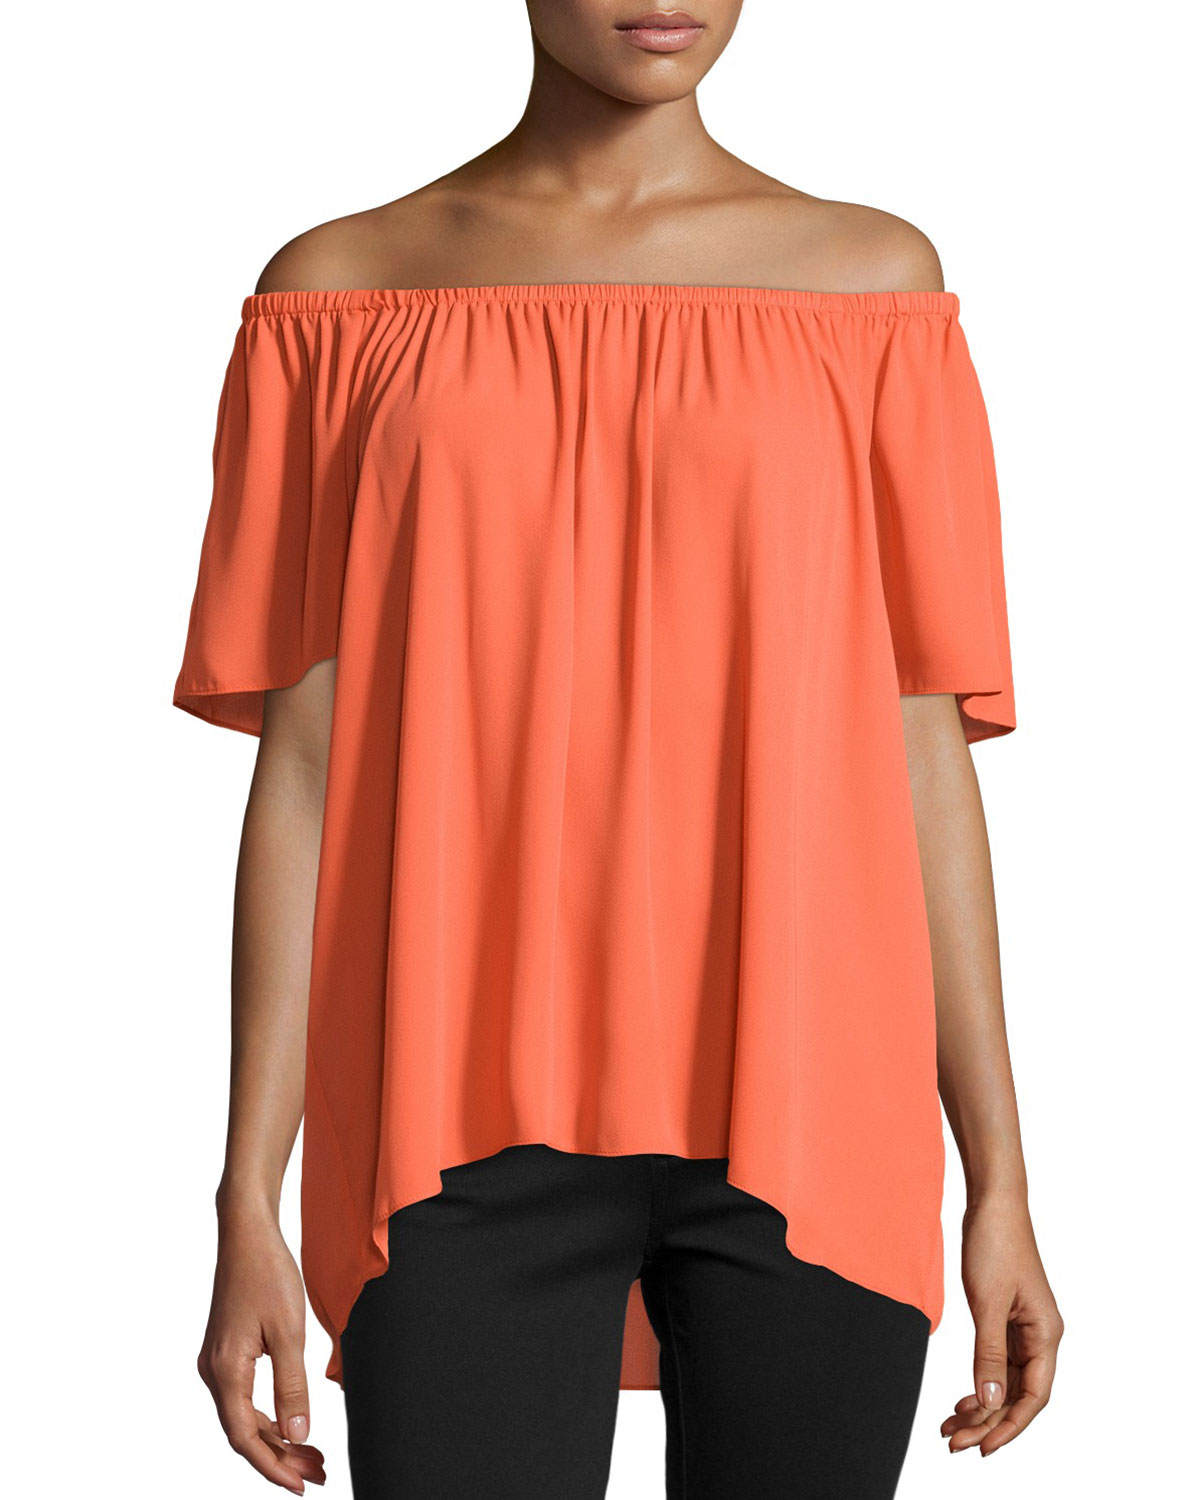 24a2ae65678a Lyst - Vince Camuto Chiffon Off-the-shoulder Blouse in Orange